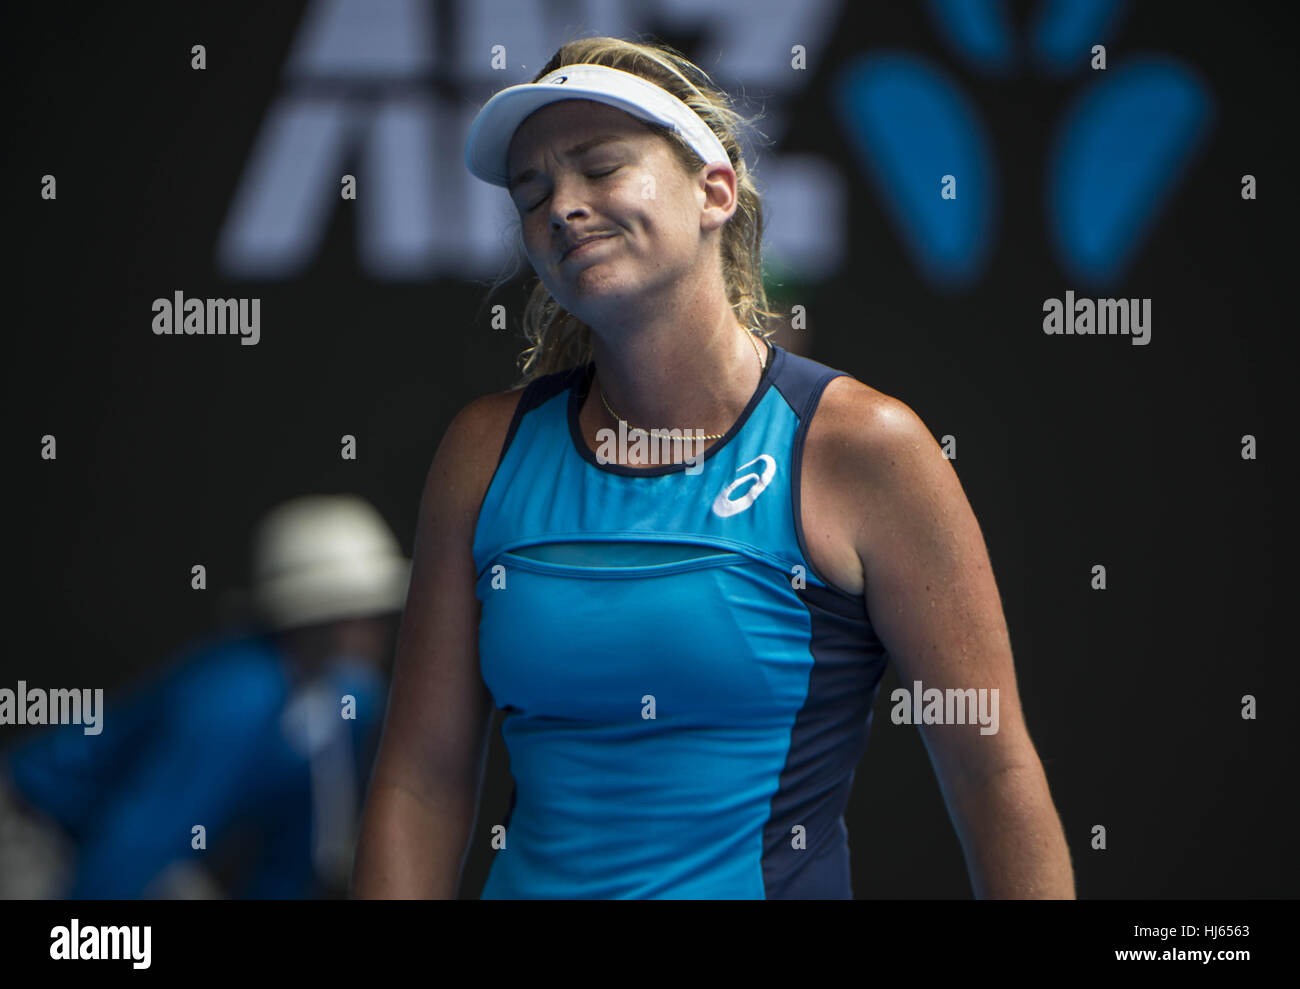 Melbourne, Australia. 26th Jan, 2017. United States' Coco Vandeweghe reacts during the women's singles semifinal - Stock Image